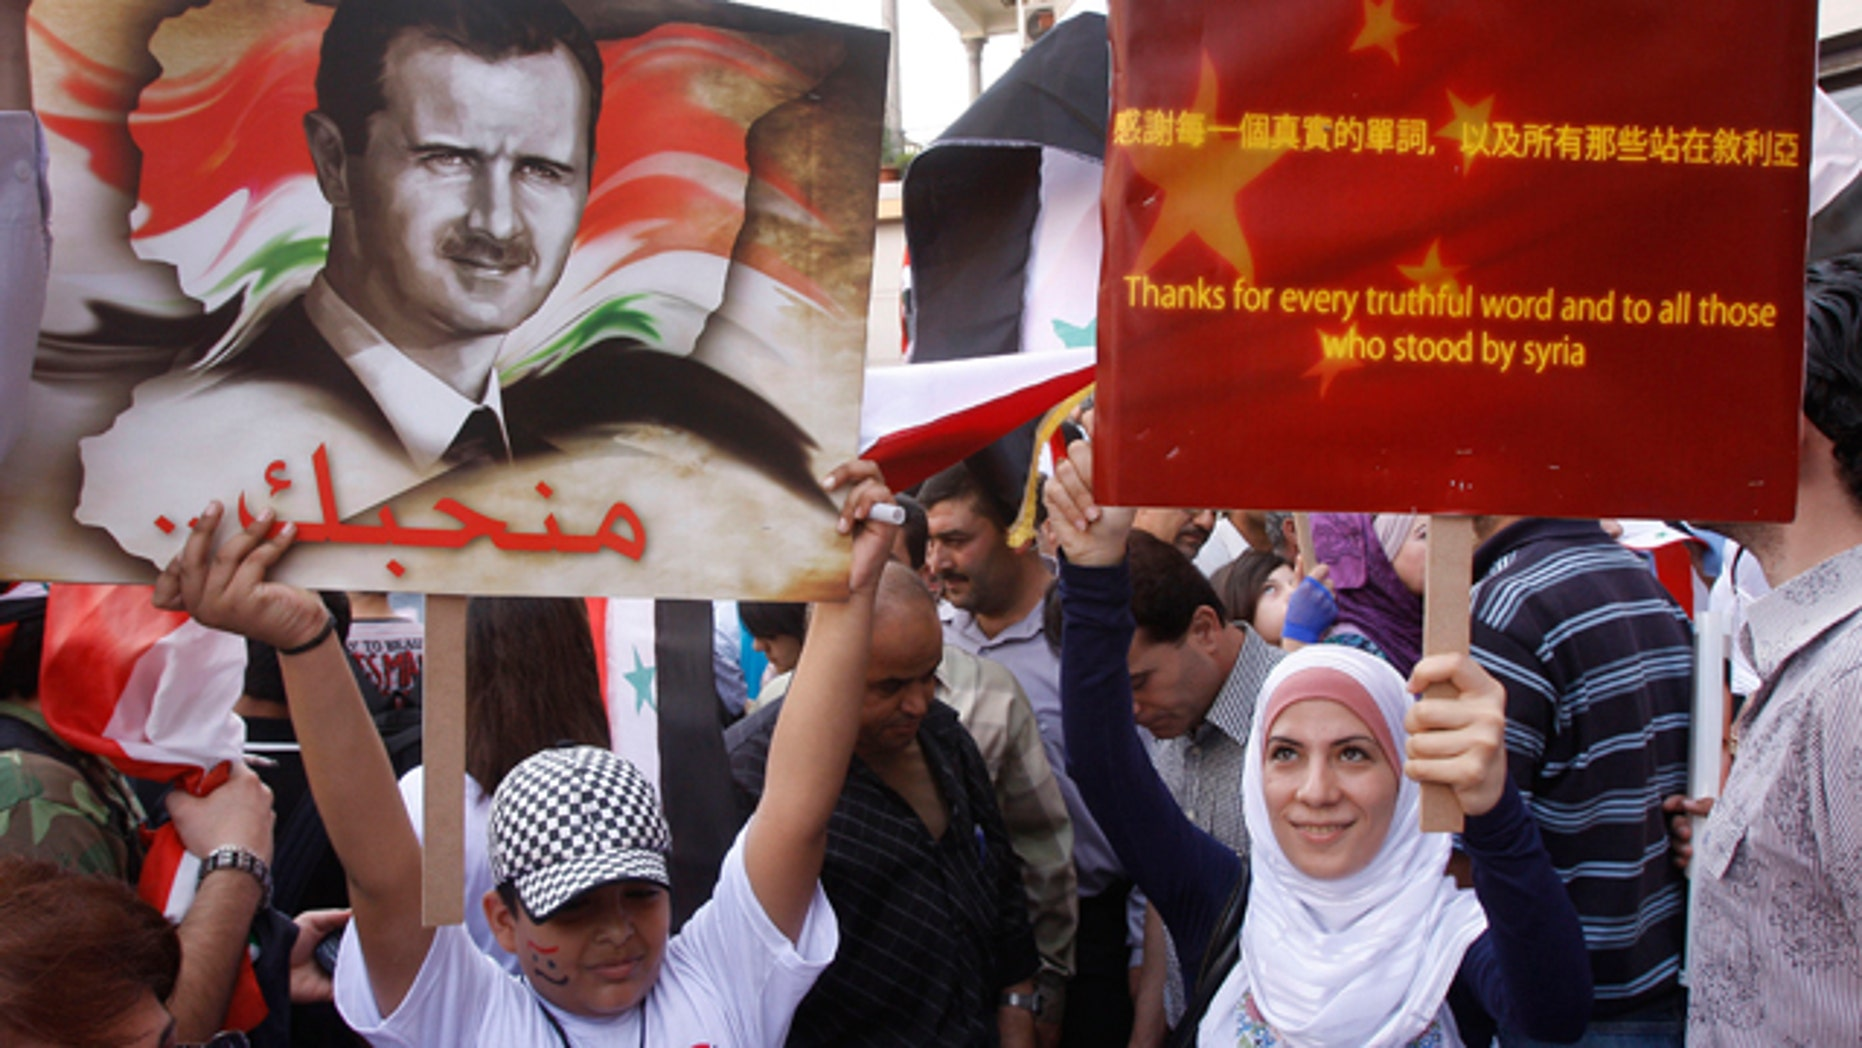 Syrian regime supporters holds up pro-China placard during a demonstration to show their support for President Bashar Assad and to thank Russia and China for blocking a U.N. Security Council resolution condemning Syria for its brutal crackdown, in Damascus, Syria.